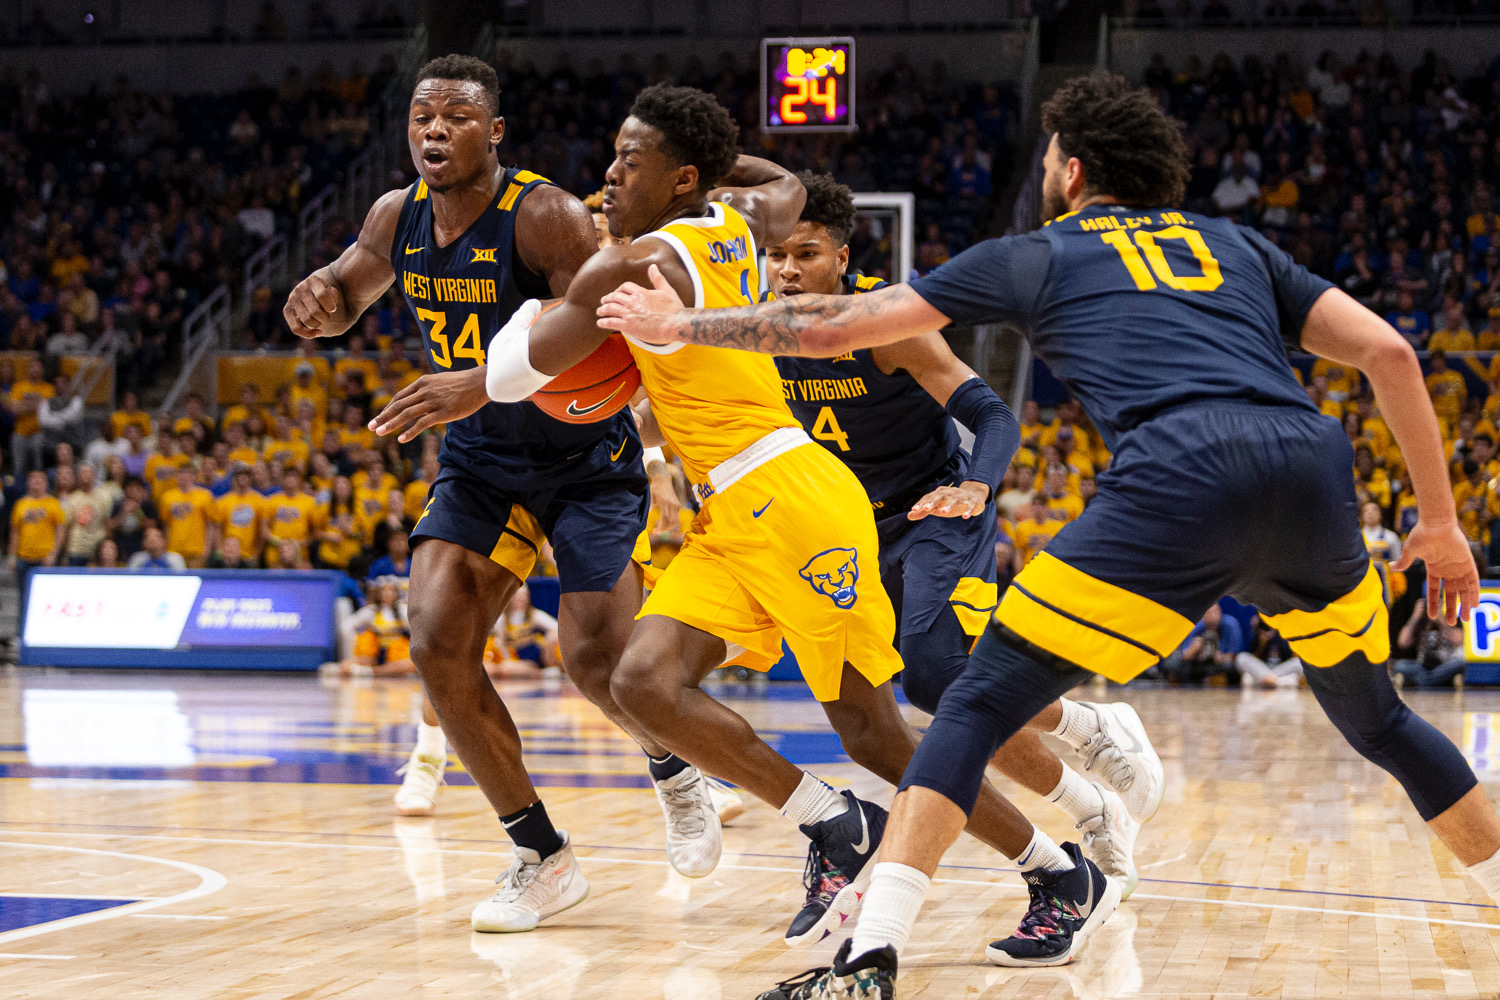 Xavier-Johnson-pitt-panthers-west-virginia-mountaineers-backyard-brawl